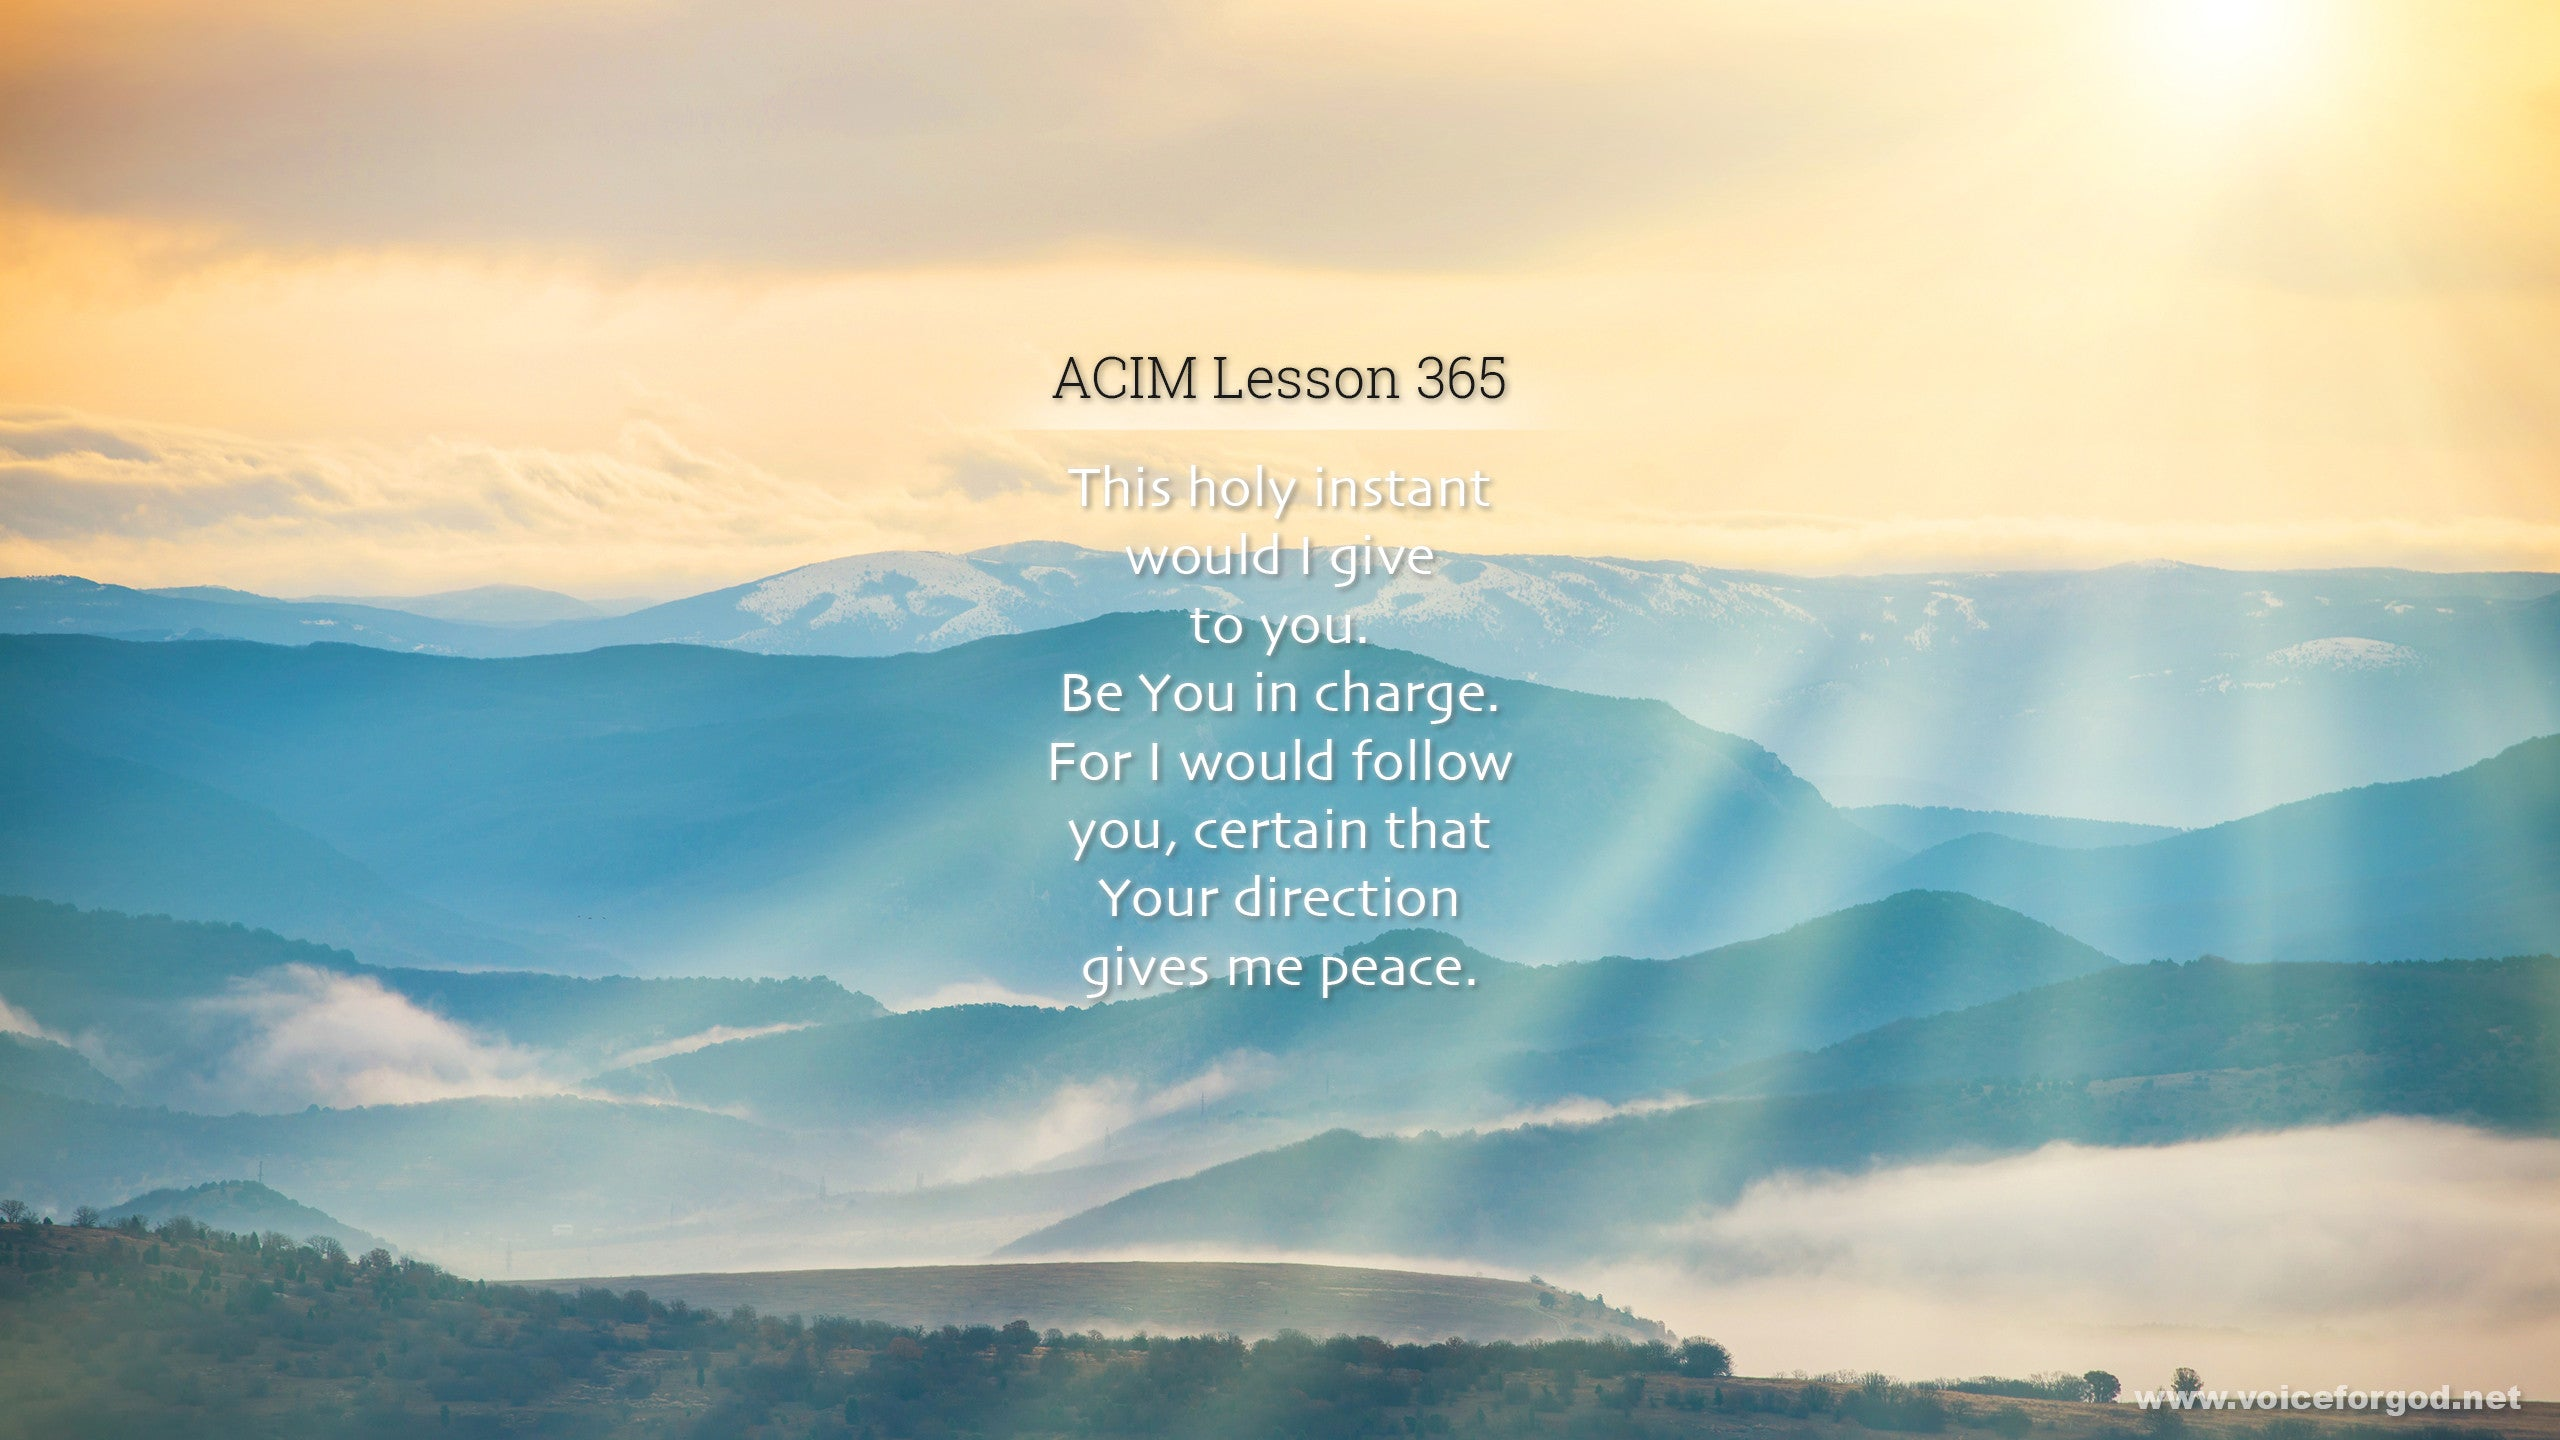 ACIM Lesson 365 - A Course in Miracles Workbook Lesson 365